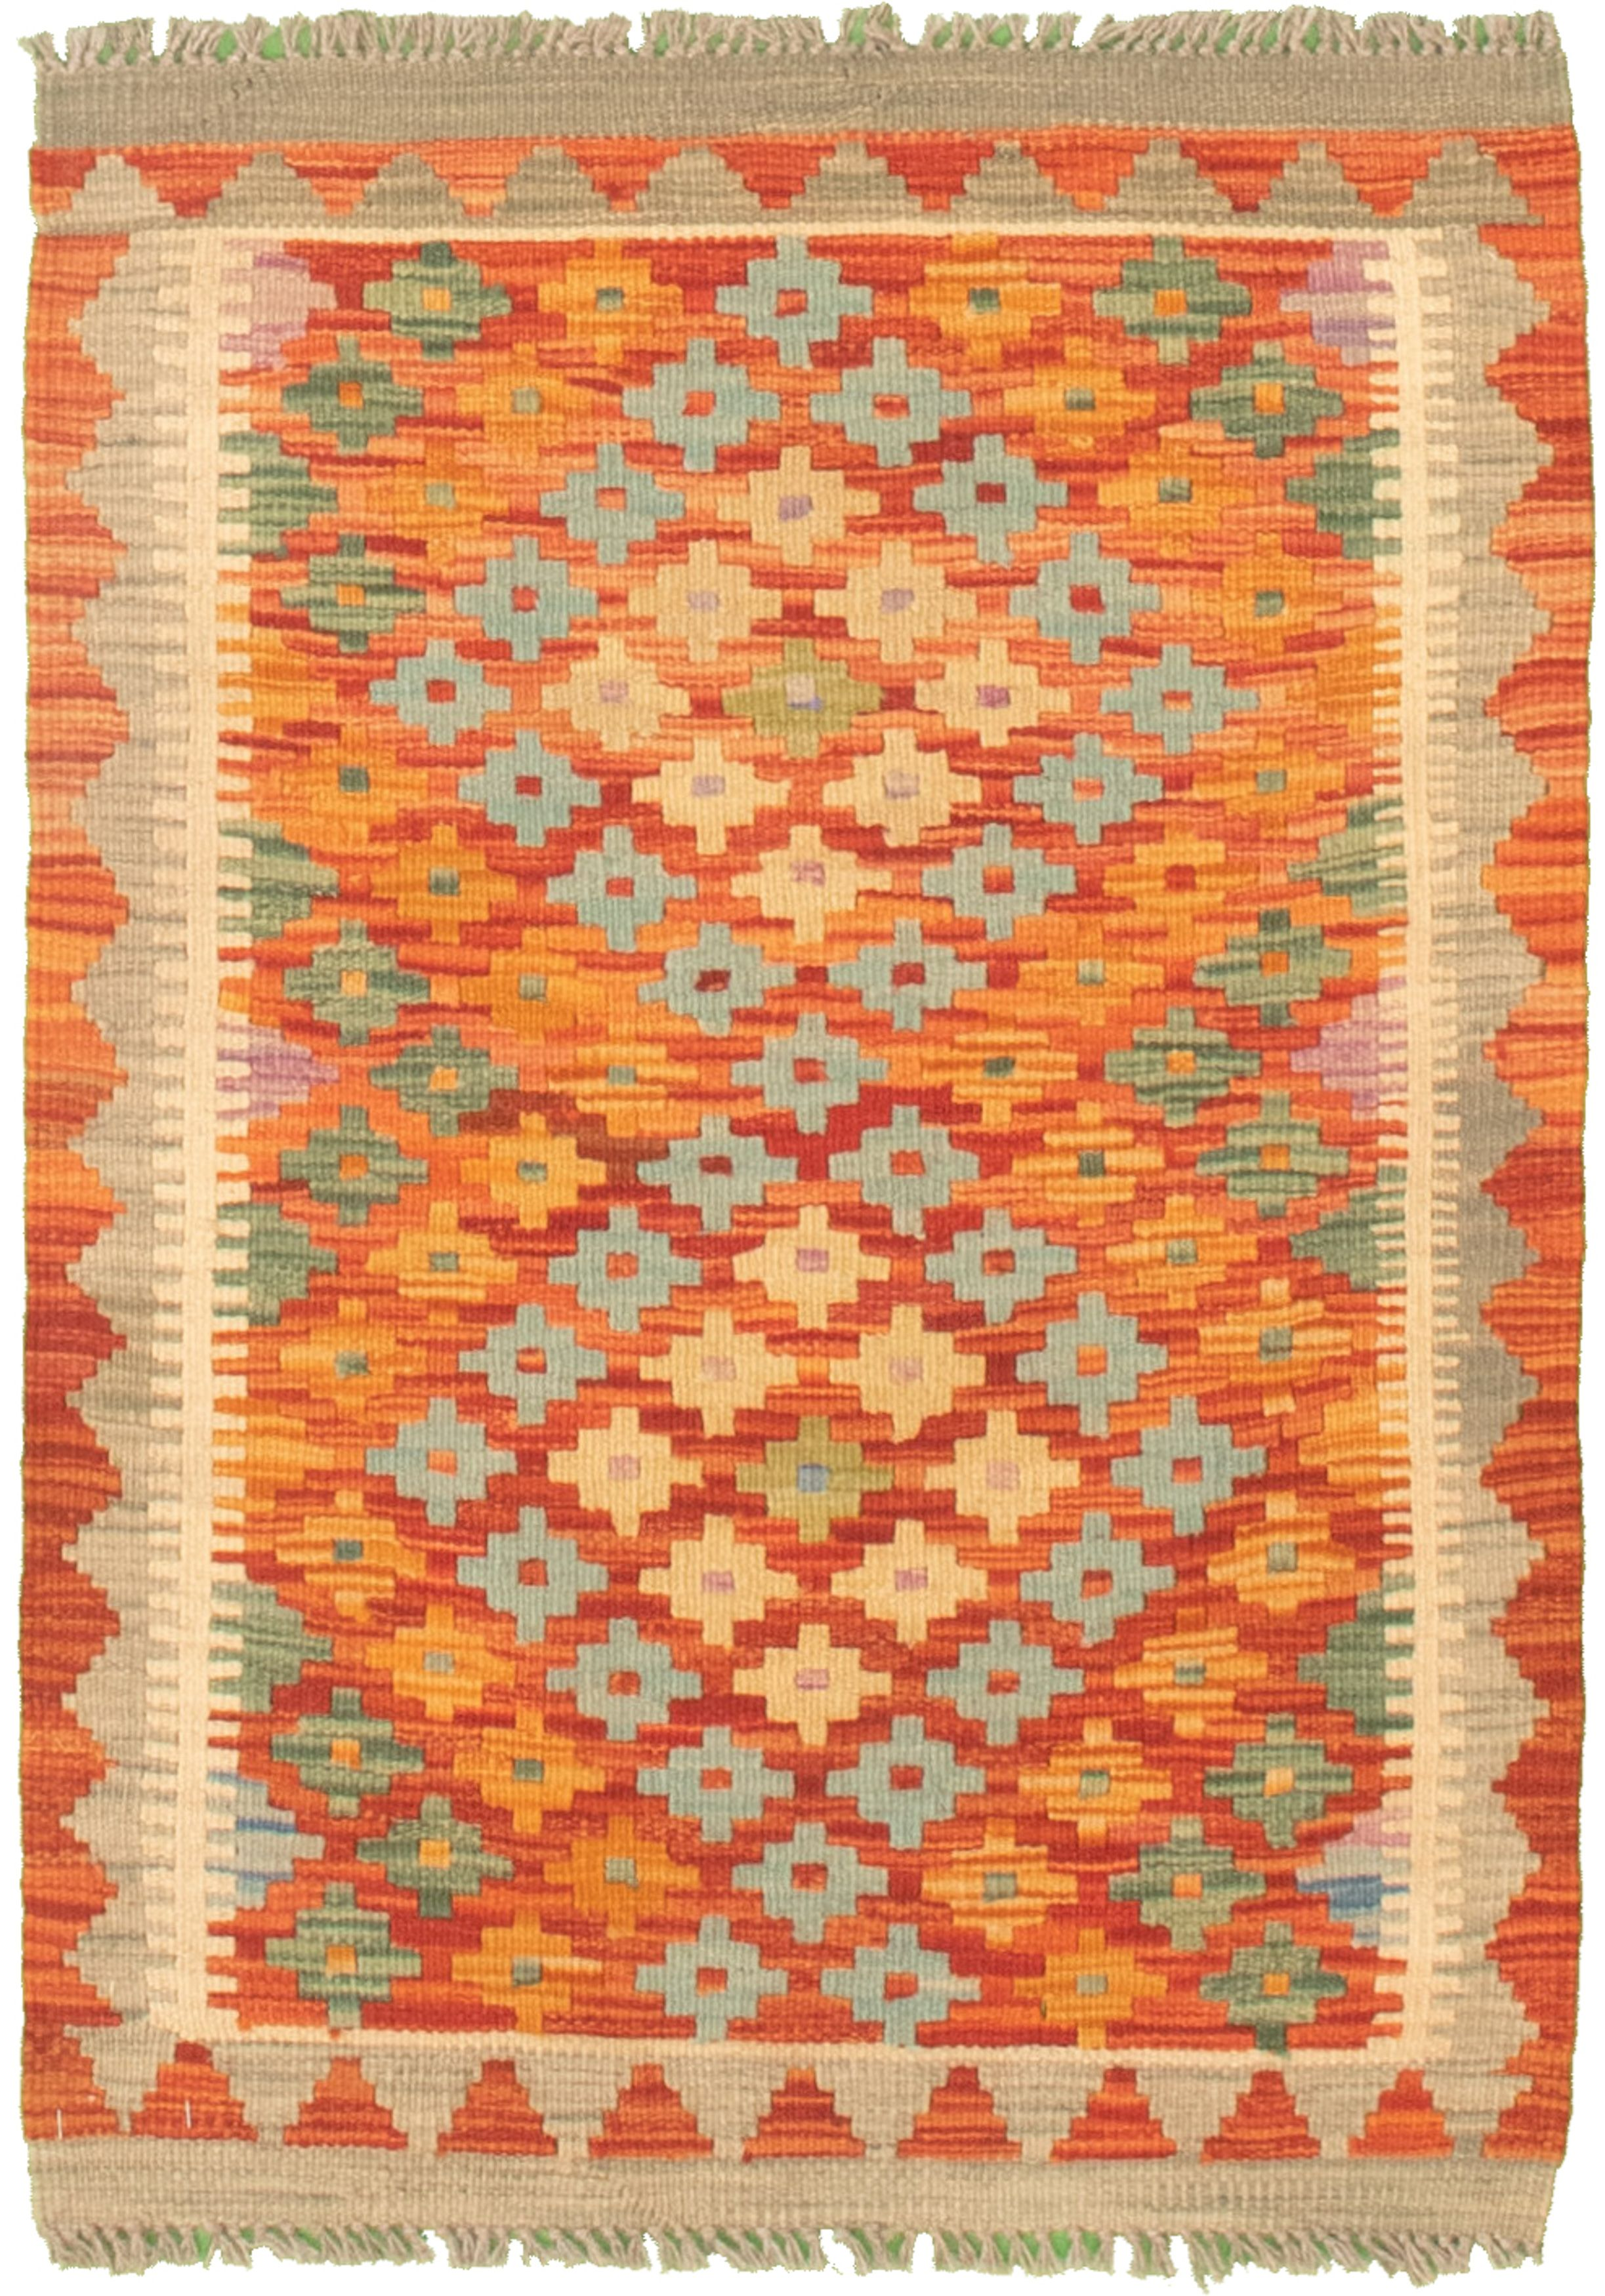 """Hand woven Bold and Colorful  Orange, Red Cotton Kilim 2'2"""" x 3'0"""" Size: 2'2"""" x 3'0"""""""